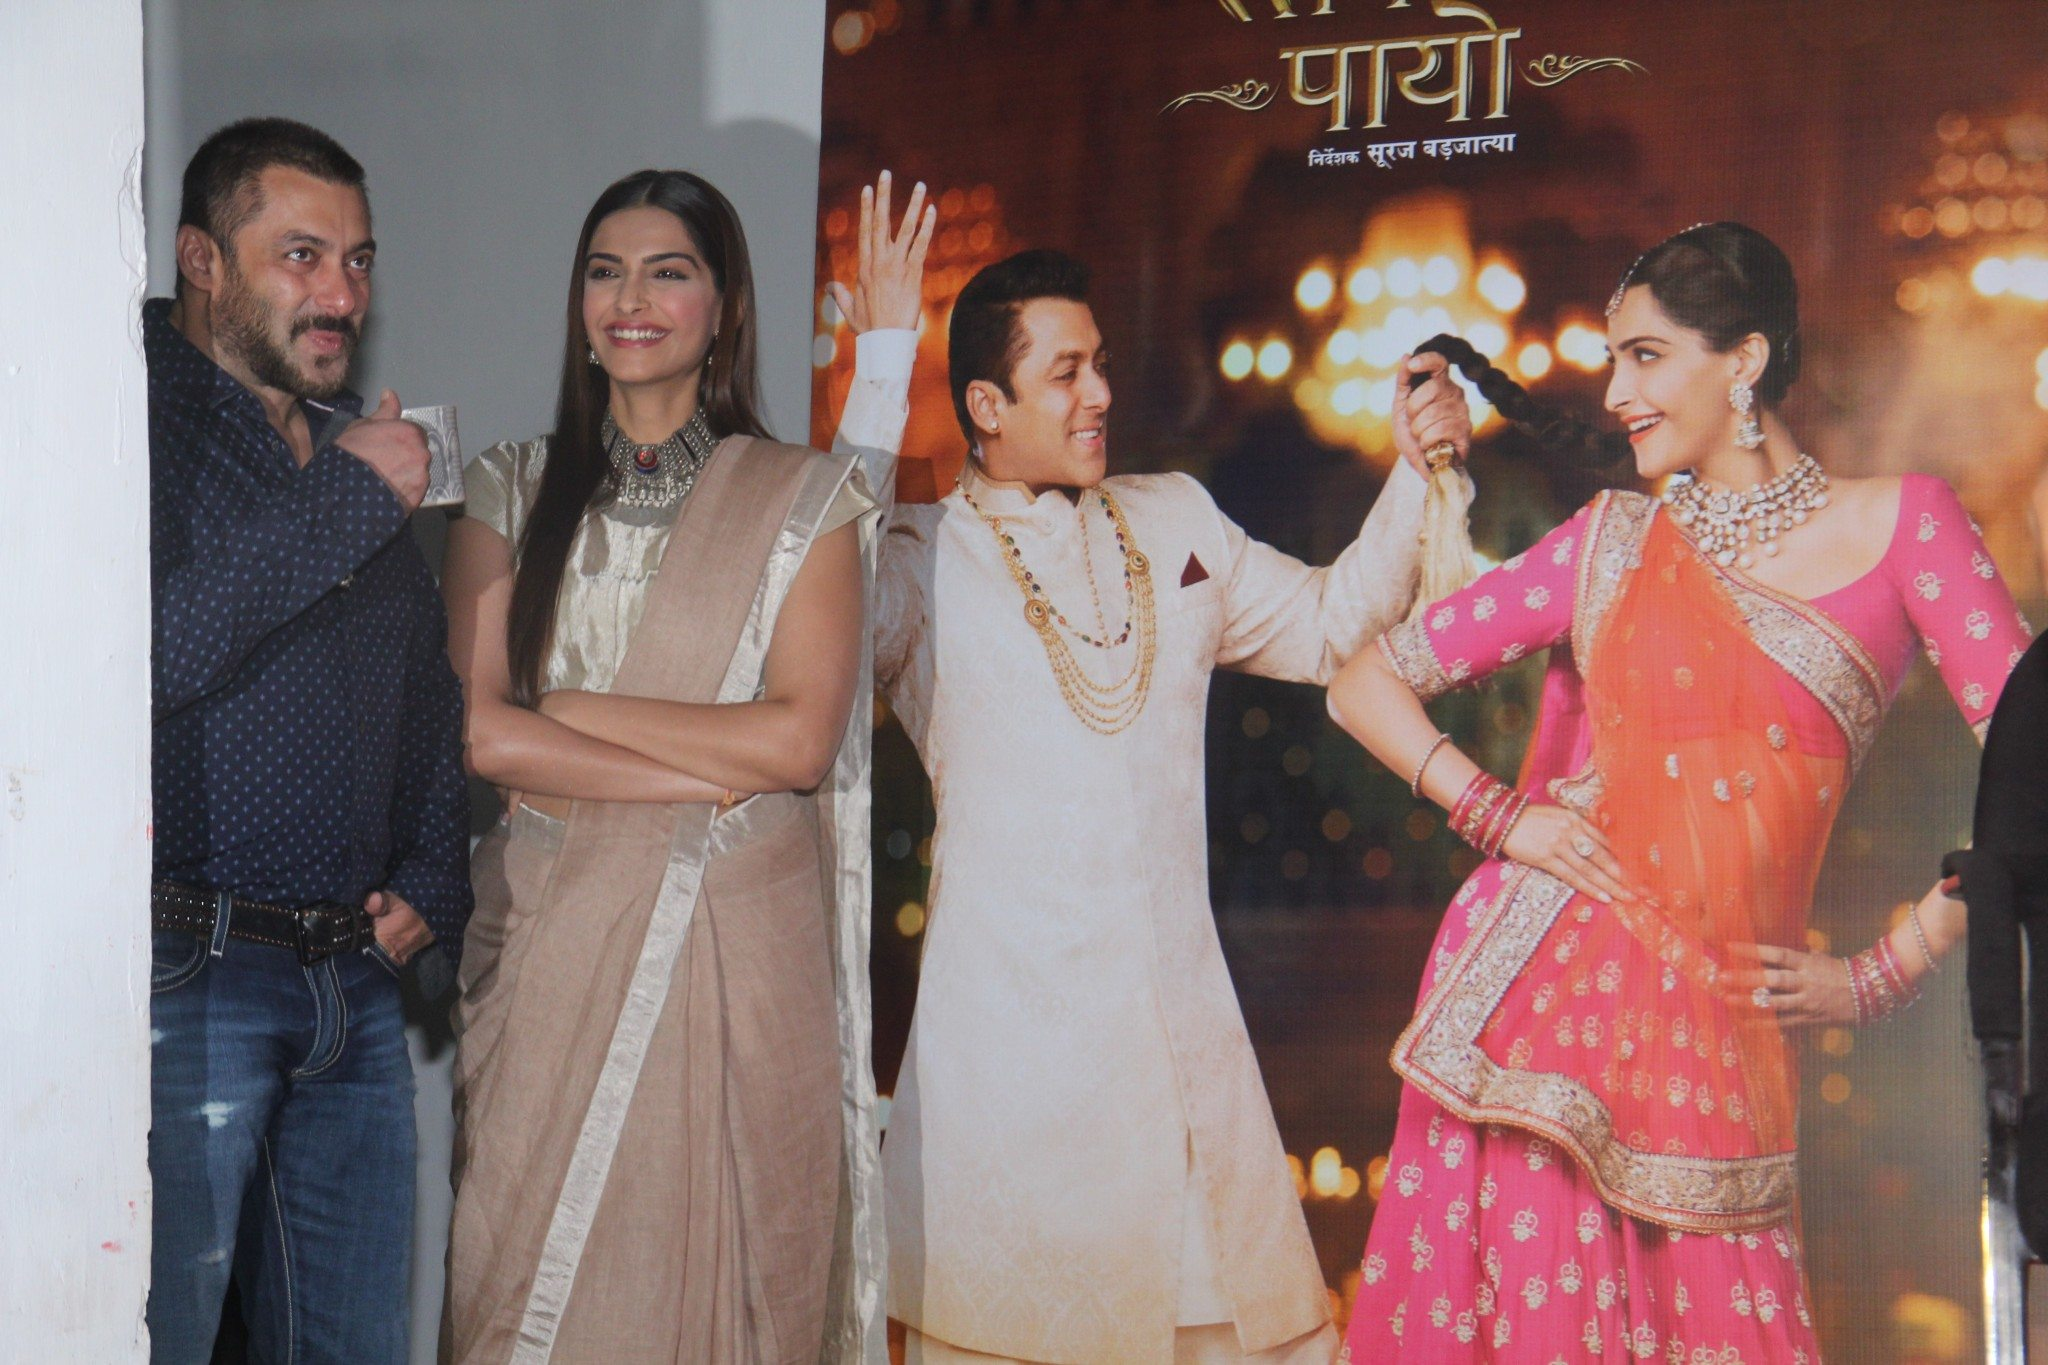 MUMBAI, INDIA - NOVEMBER 16: Bollywood actors Salman Khan and Sonam Kapoor during the press conference organised to thank the audience for the love and support they have shown for the film Prem Ratan Dhan Payo on November 16, 2015 in Mumbai, India. (Photo by Pramod Thakur/Hindustan Times via Getty Images)